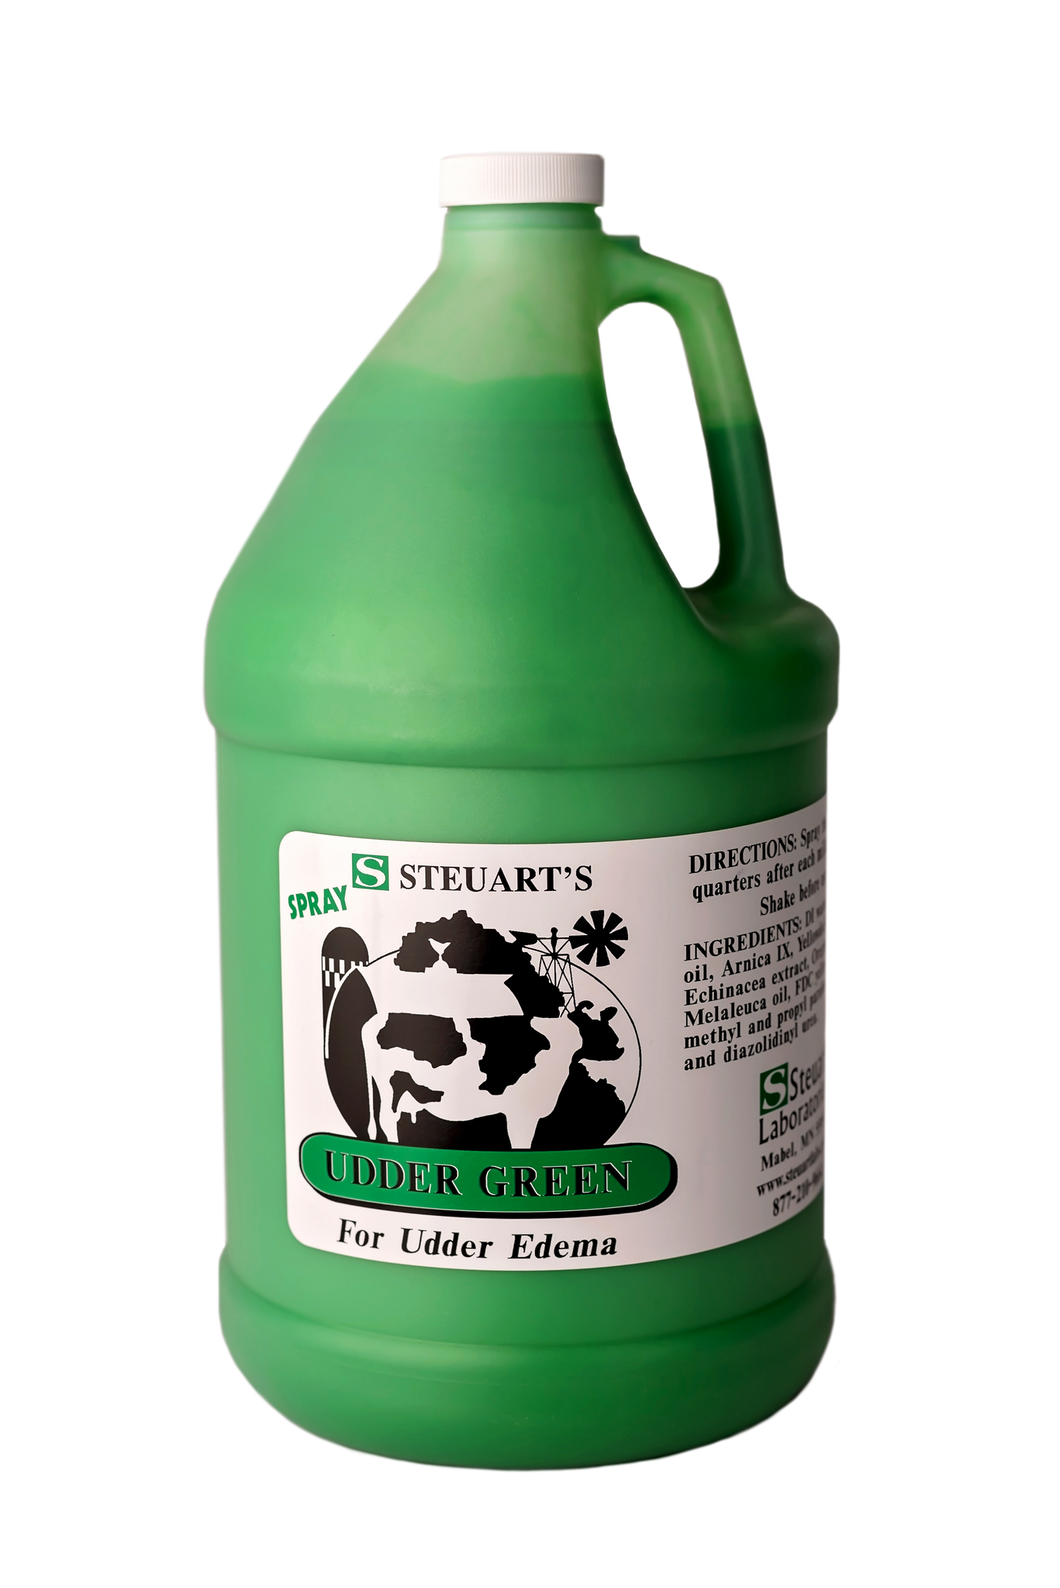 Steuart's Udder Green Spray 1 Gallon